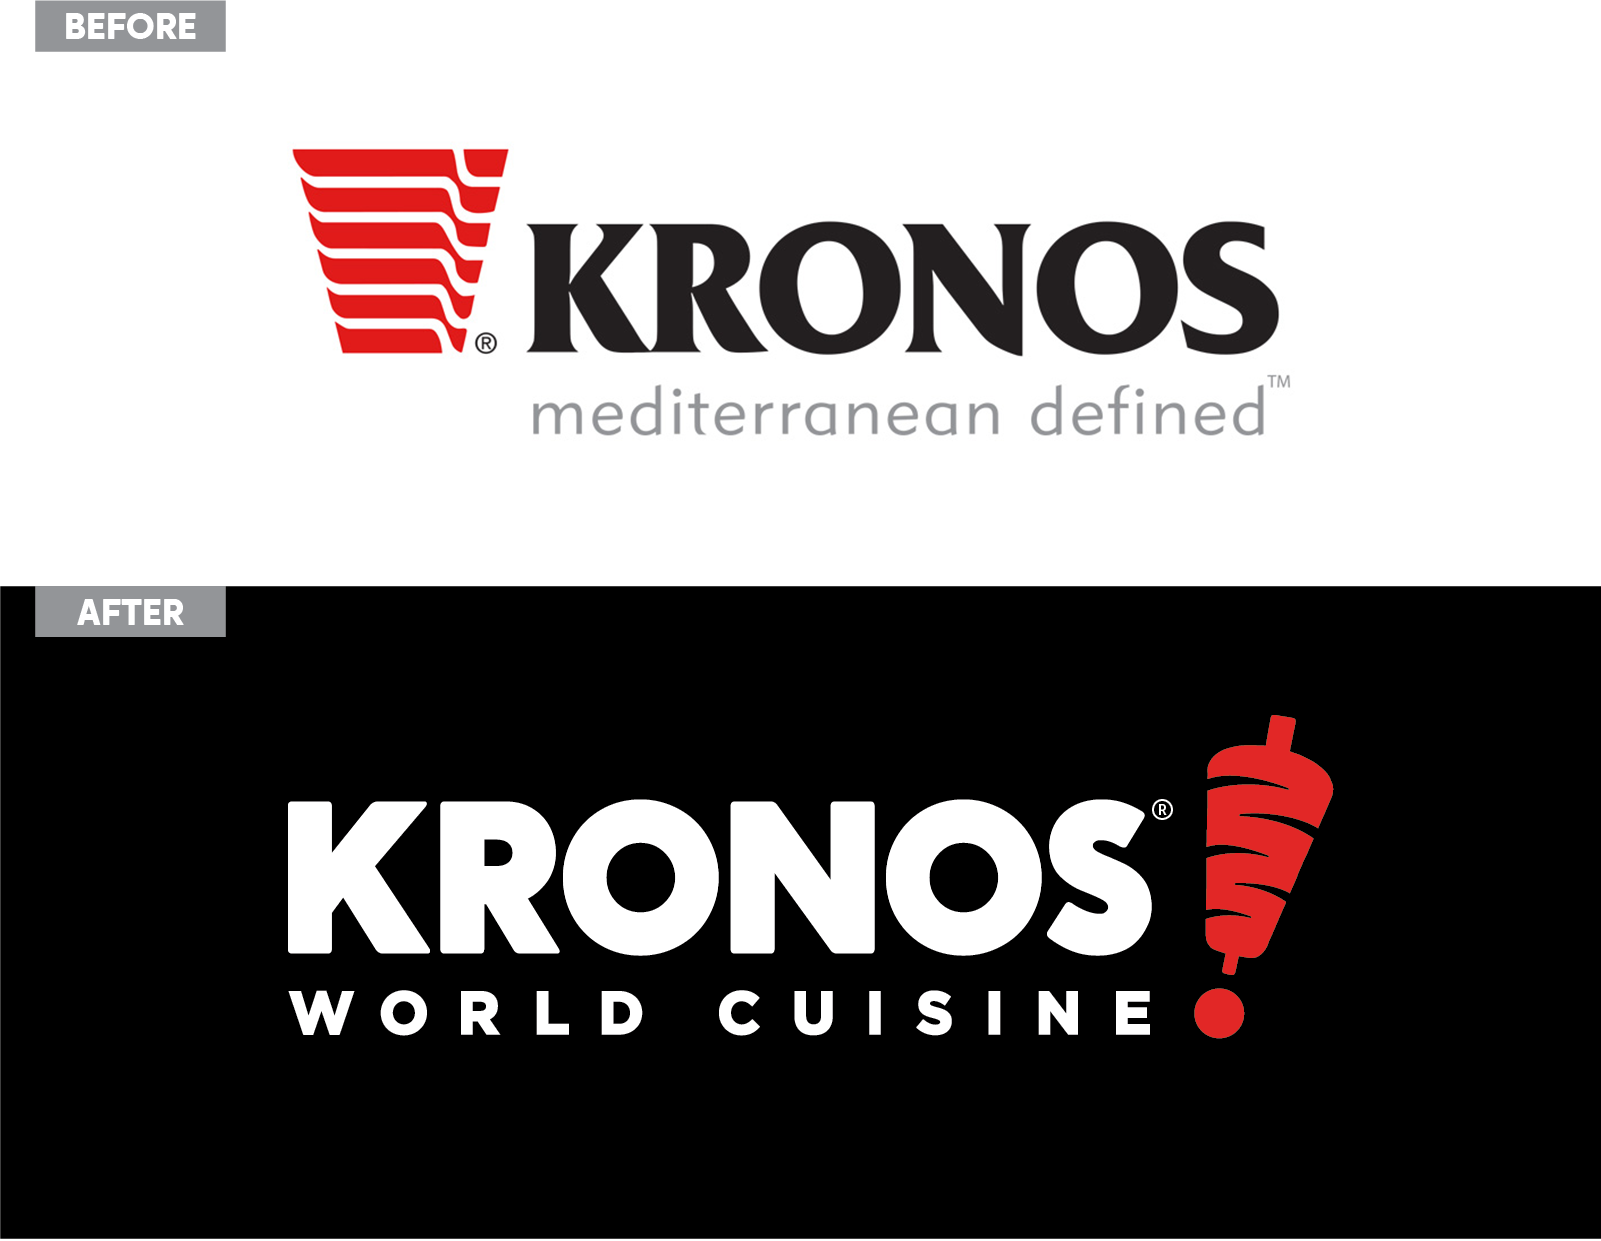 Before and After of Kronos Branding